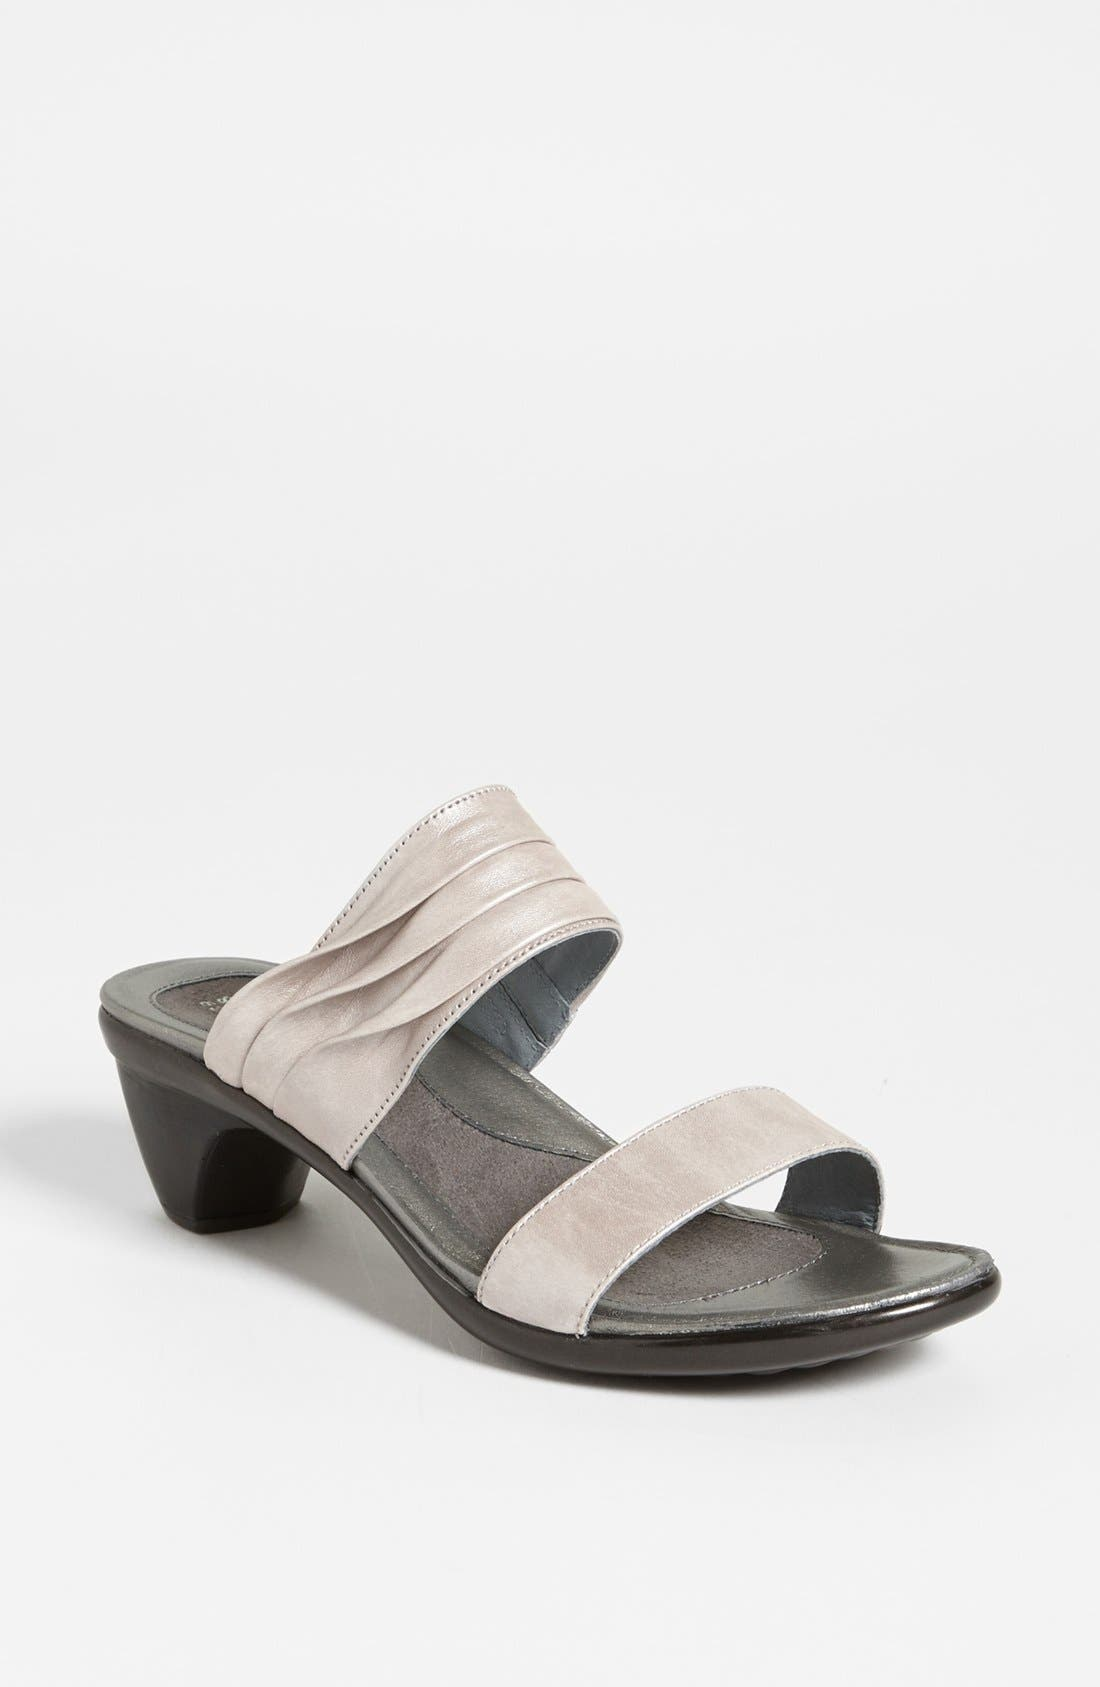 Alternate Image 1 Selected - Naot 'Isis' Sandal